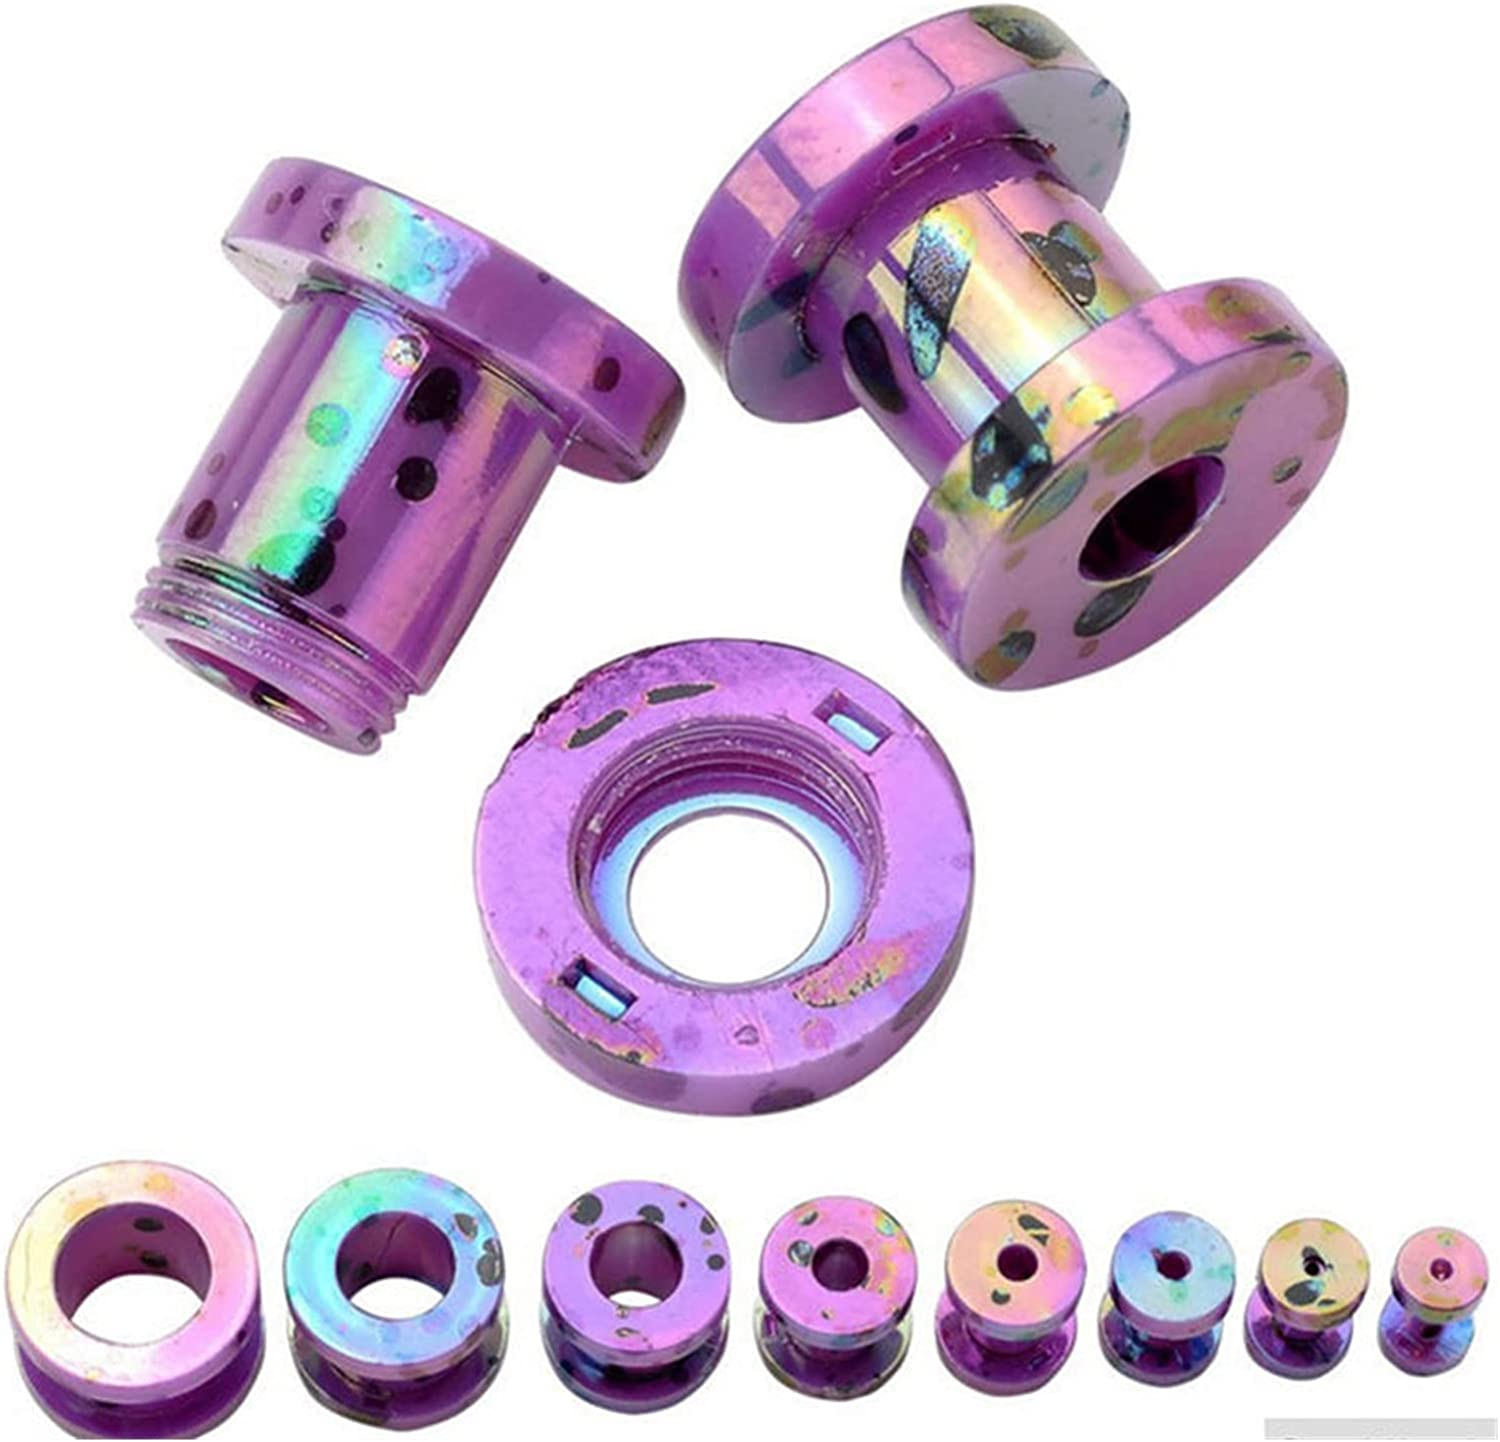 QWERBAM 1 Pair Ear Piercing Ring Body Jewelry Stretchers Acrylic Tunnels Plugs Expanders Gauges for Women Men Ear Expansion (Main Stone Color : 2mm, Metal Color : Purple)